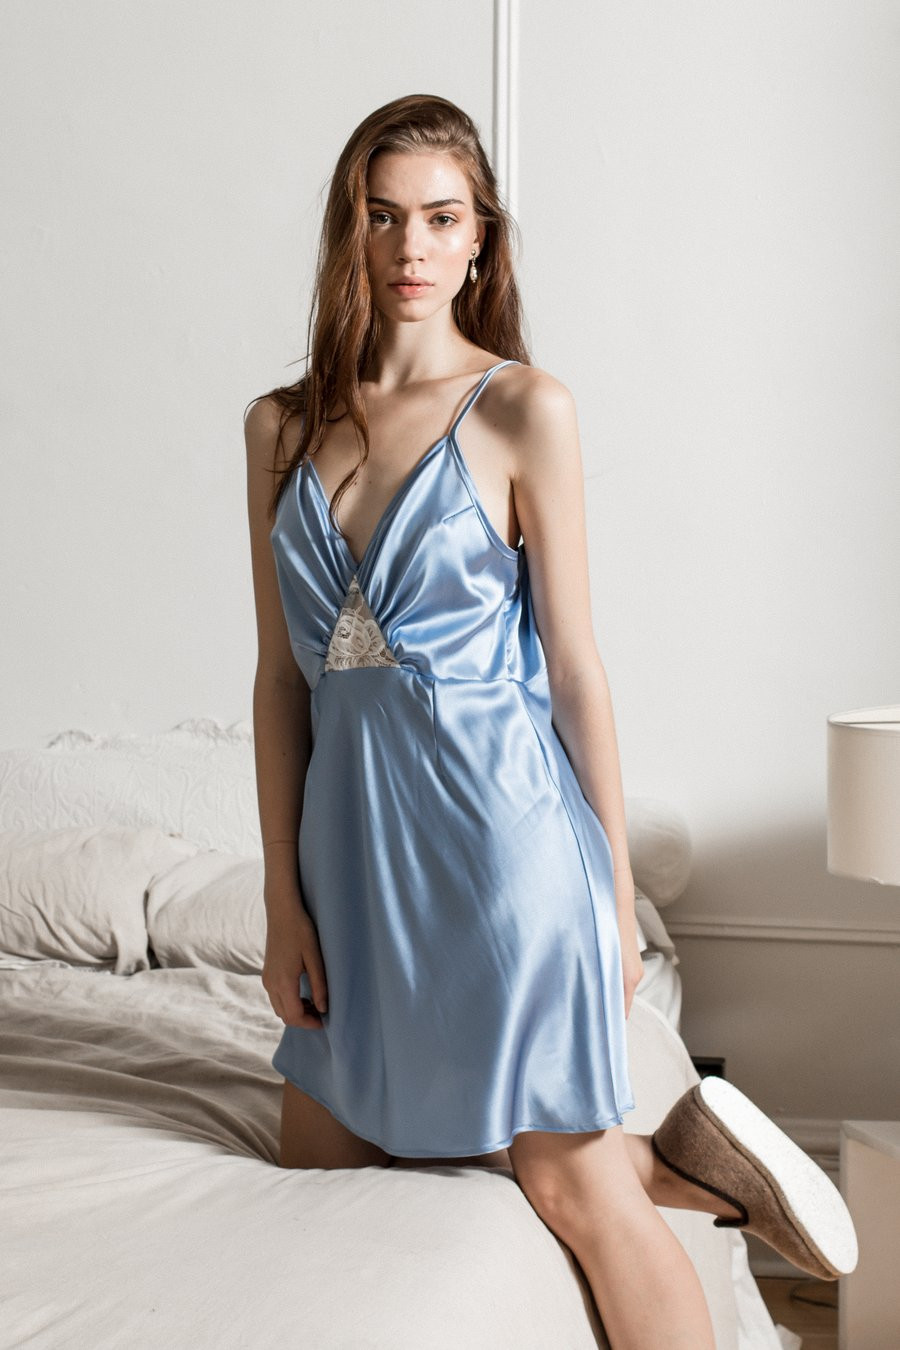 woman wearing blue nightgown slip from atelier aleur, sustainable ethical fashion brand